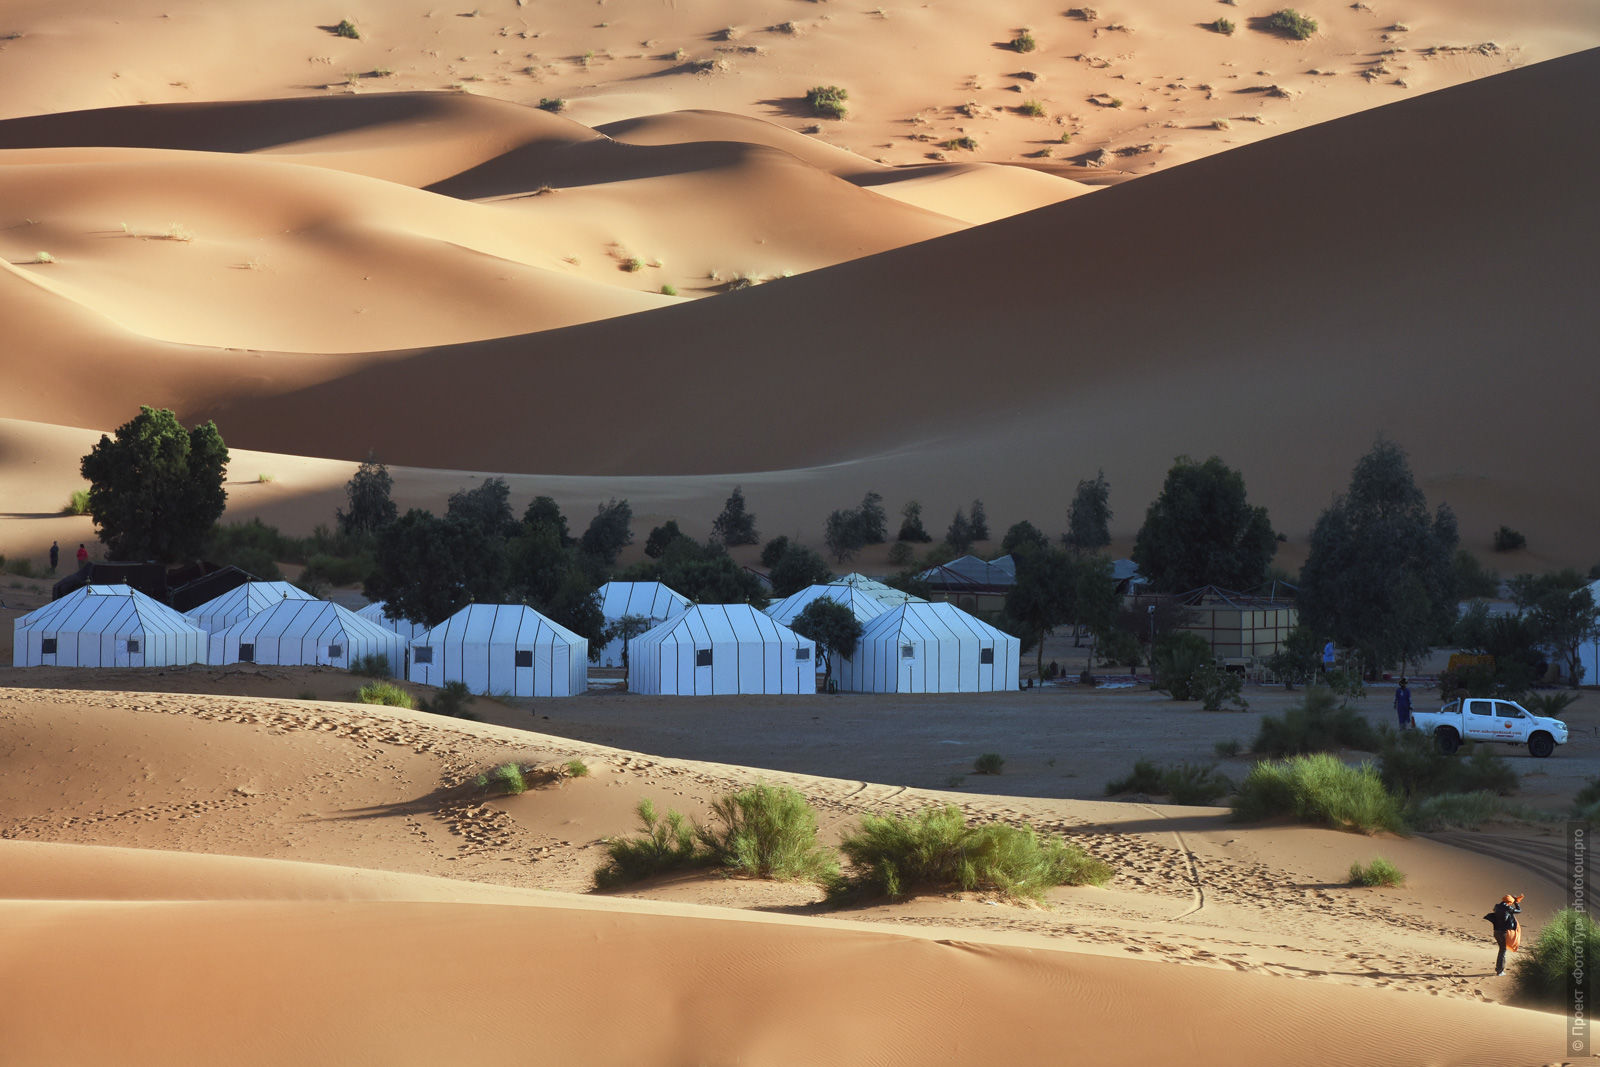 Camping in Merzouga, Morocco. Adventure photo tour: medina, cascades, sands and ports of Morocco, April 4 - 17, 2020.